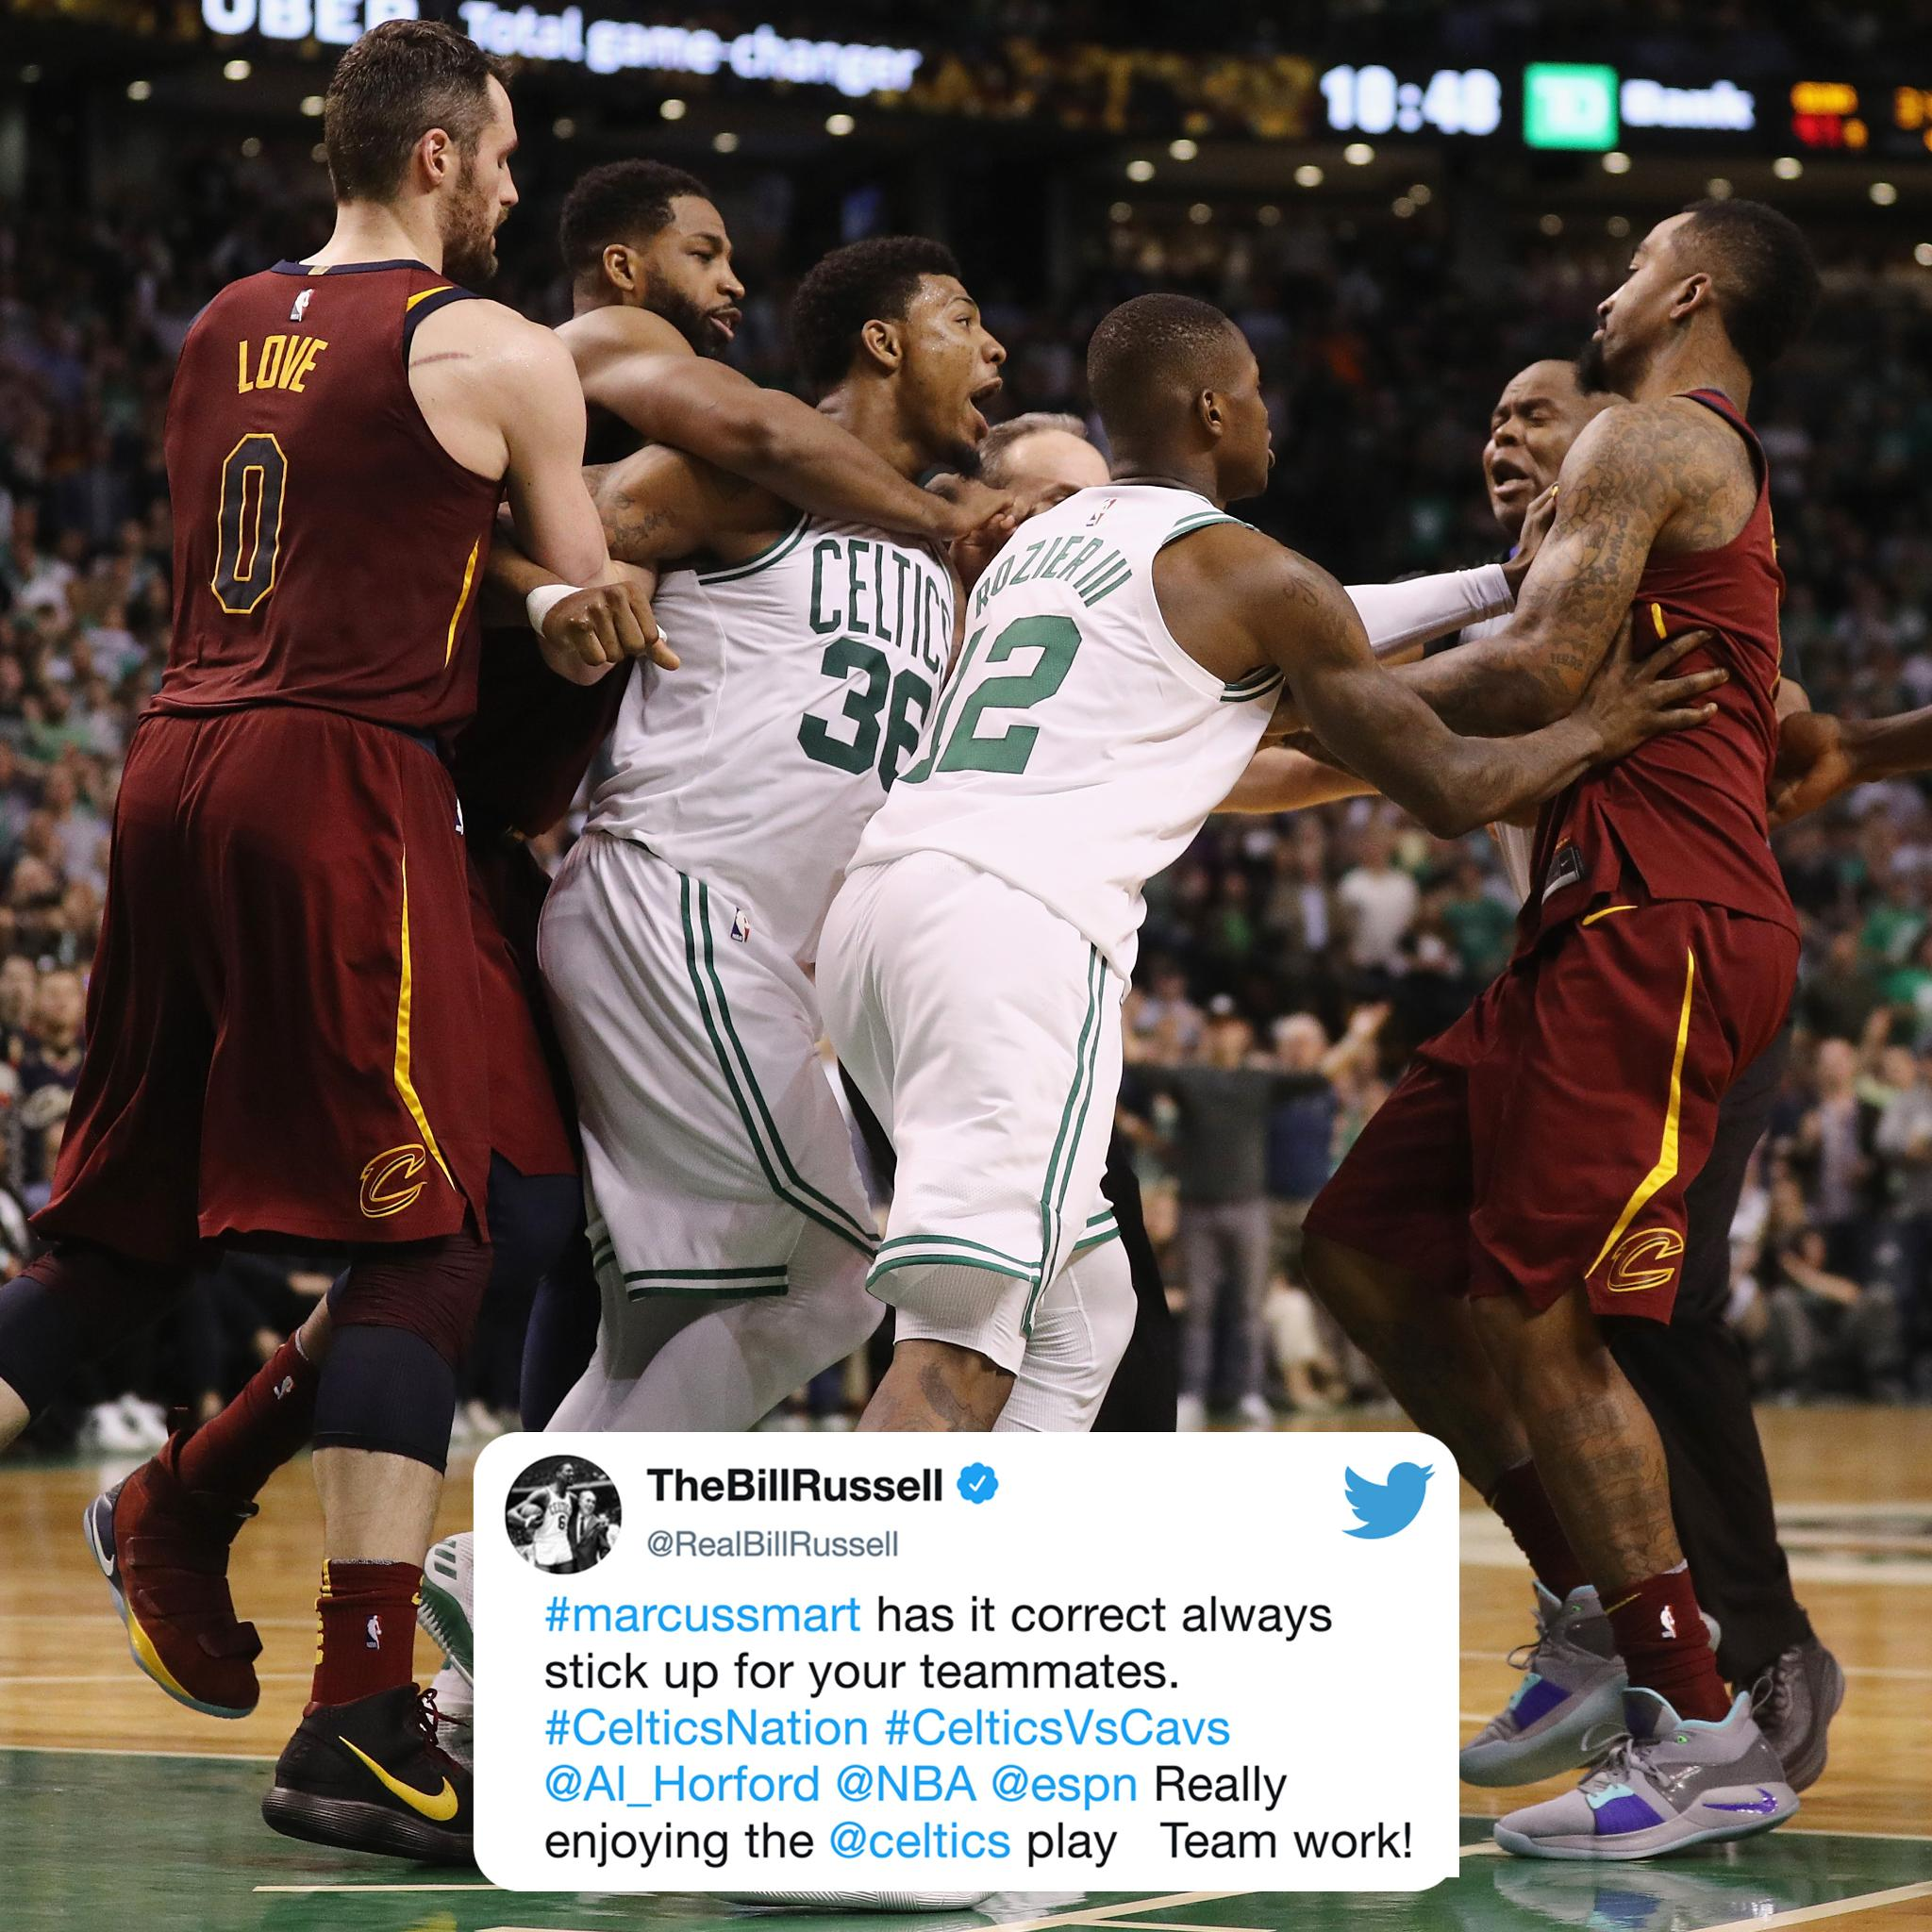 Bill Russell approves of Marcus Smart sticking up for Al Horford. https://t.co/BAg3AGVGXH